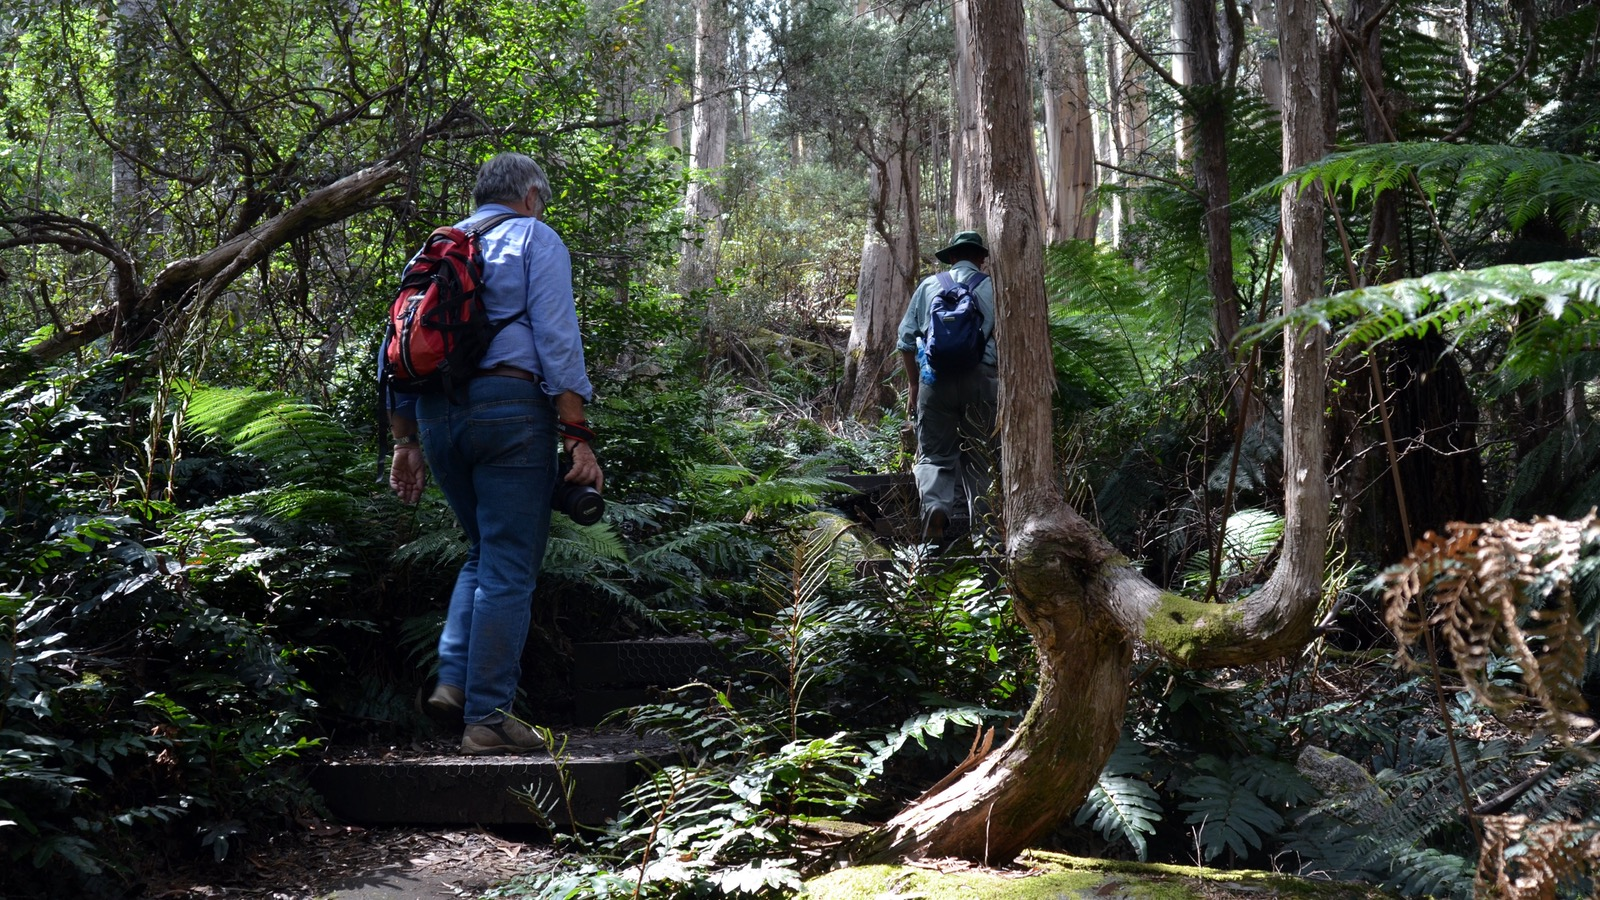 Mt Baw Baw National Park